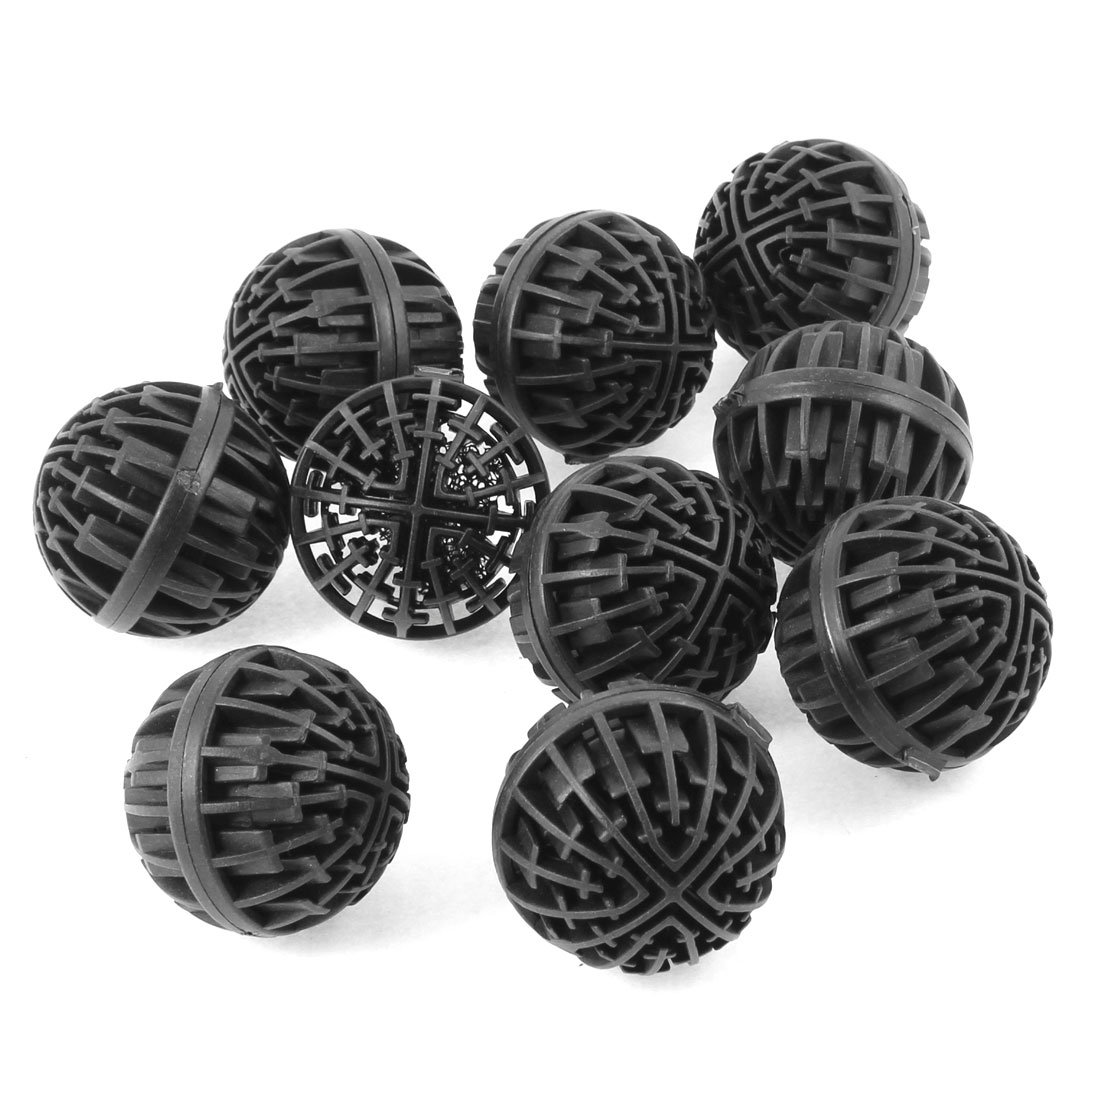 Aquarium Fish Tank Filter Strainer 42mm Dia Black Biochemical Bio Balls 10 Pcs